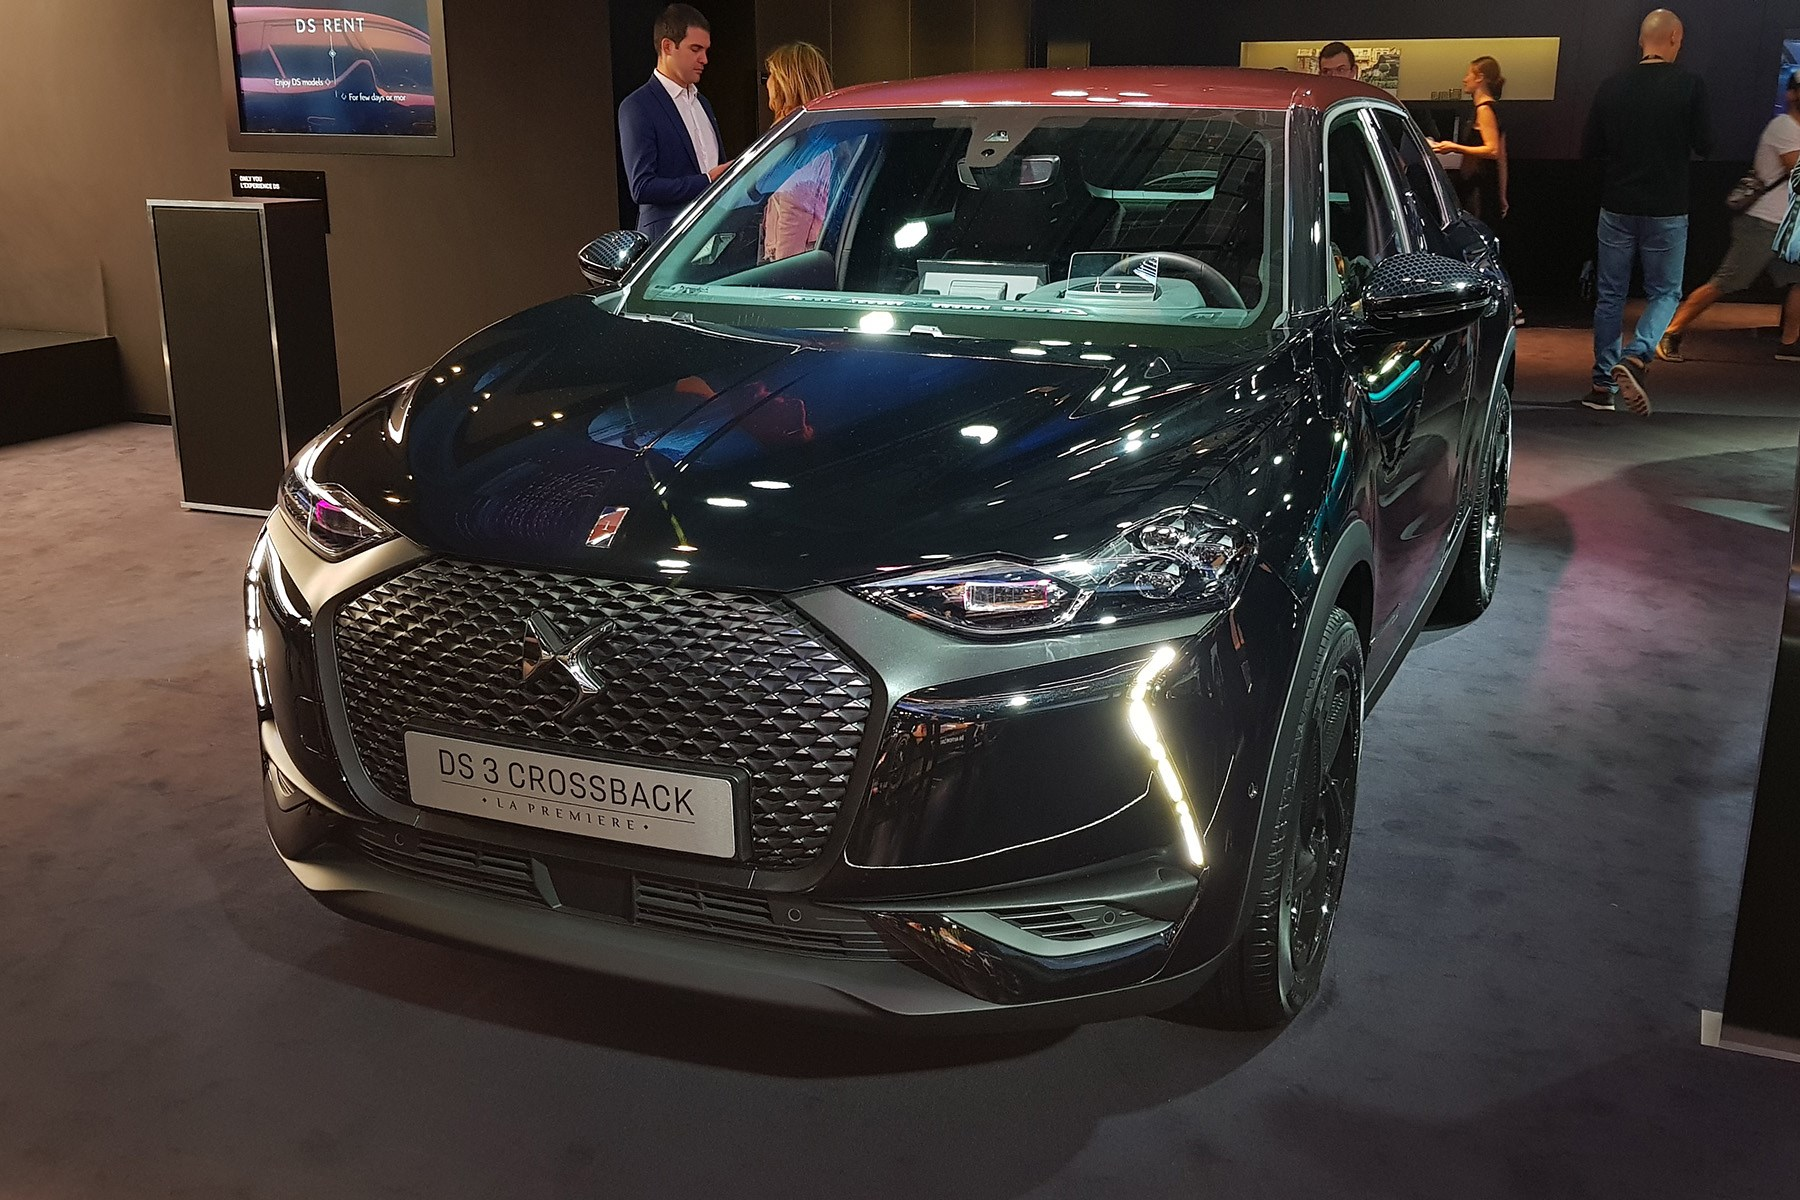 ds 3 crossback uk price specs revealed and ev details too car magazine. Black Bedroom Furniture Sets. Home Design Ideas